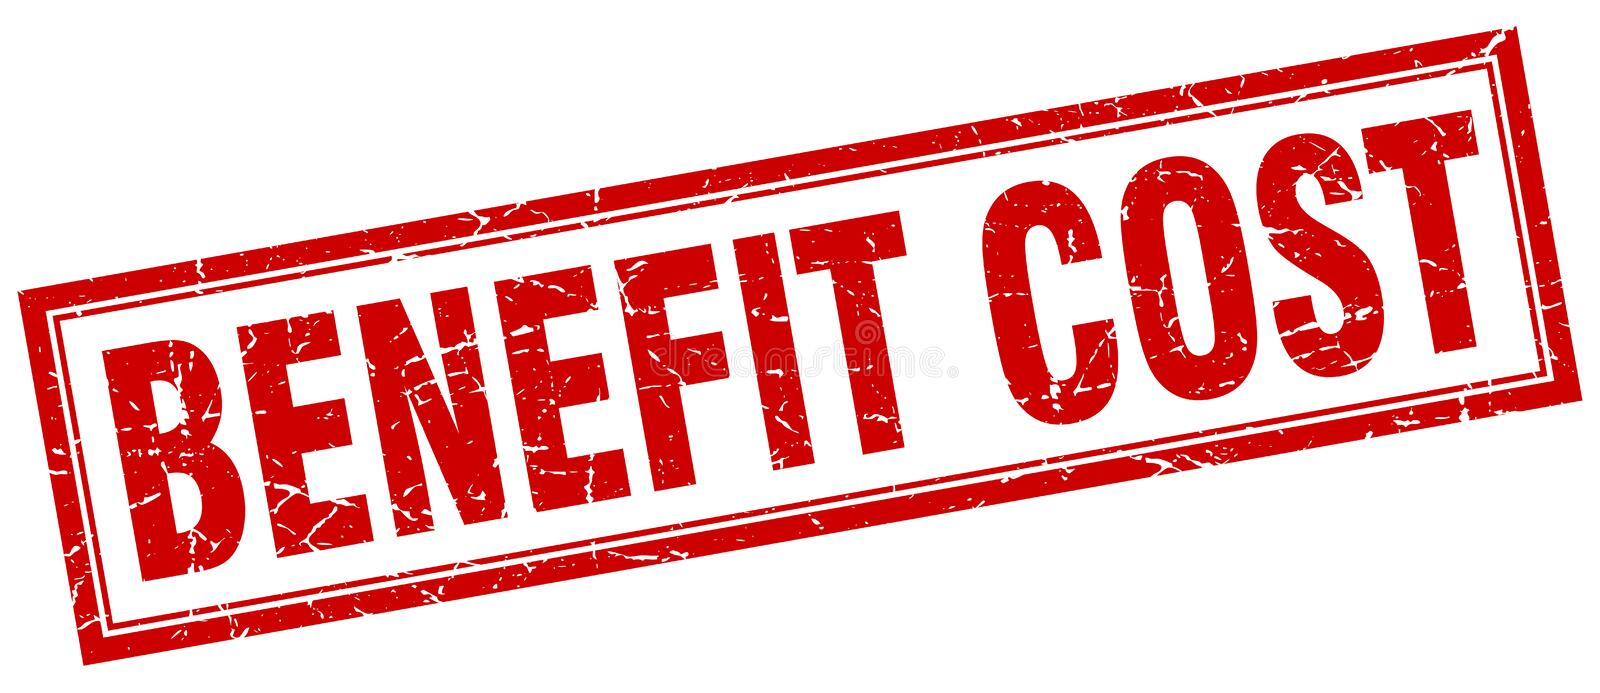 Benefit cost stamp. Benefit cost square grunge stamp. benefit cost sign. benefit cost royalty free illustration